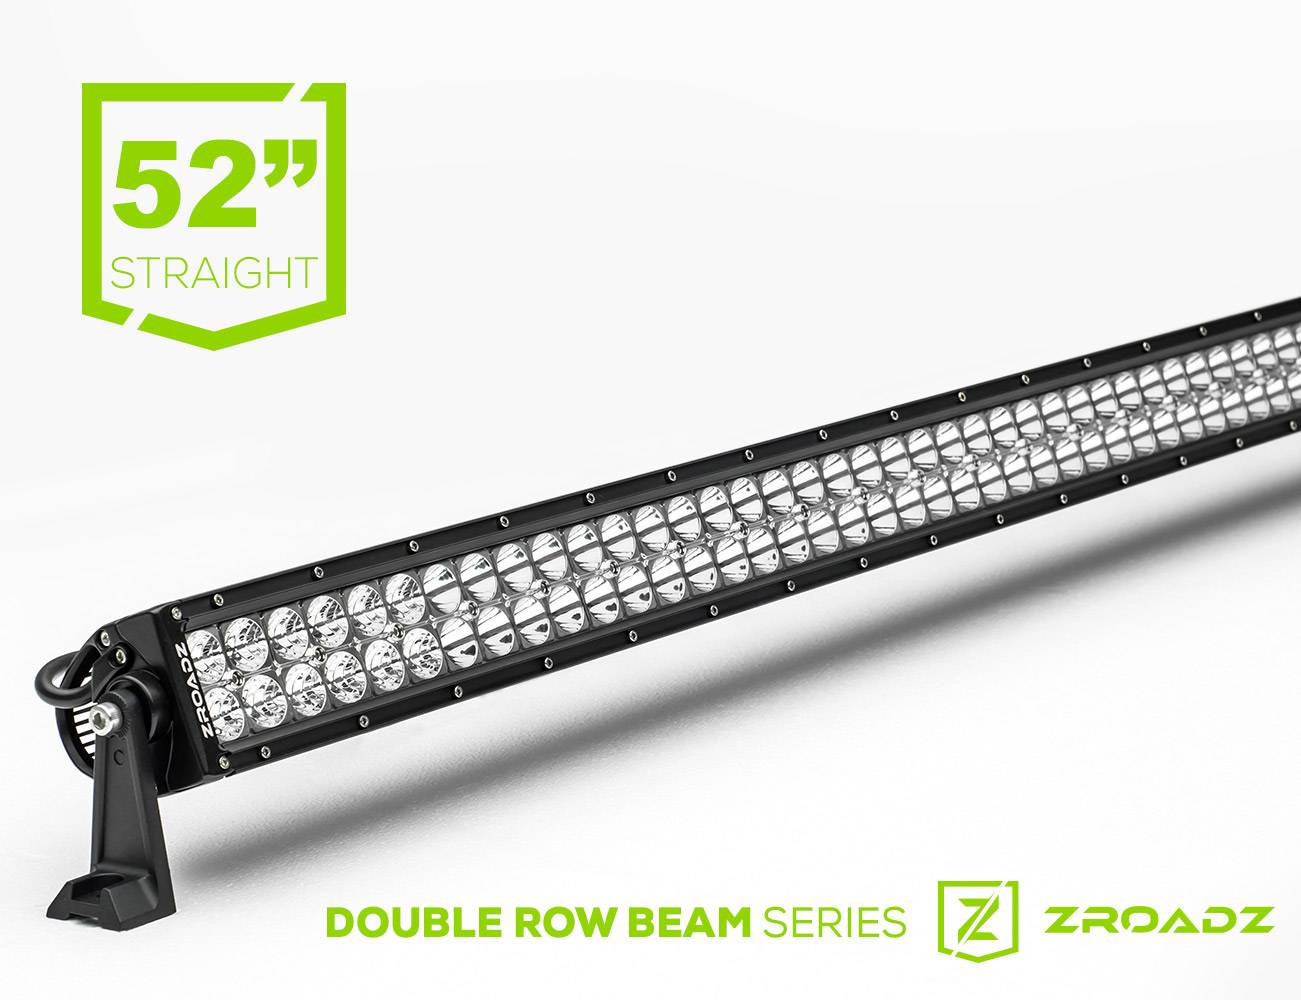 ZROADZ                                             - 52 Inch LED Straight Double Row Light Bar - PN #Z30BC14W300